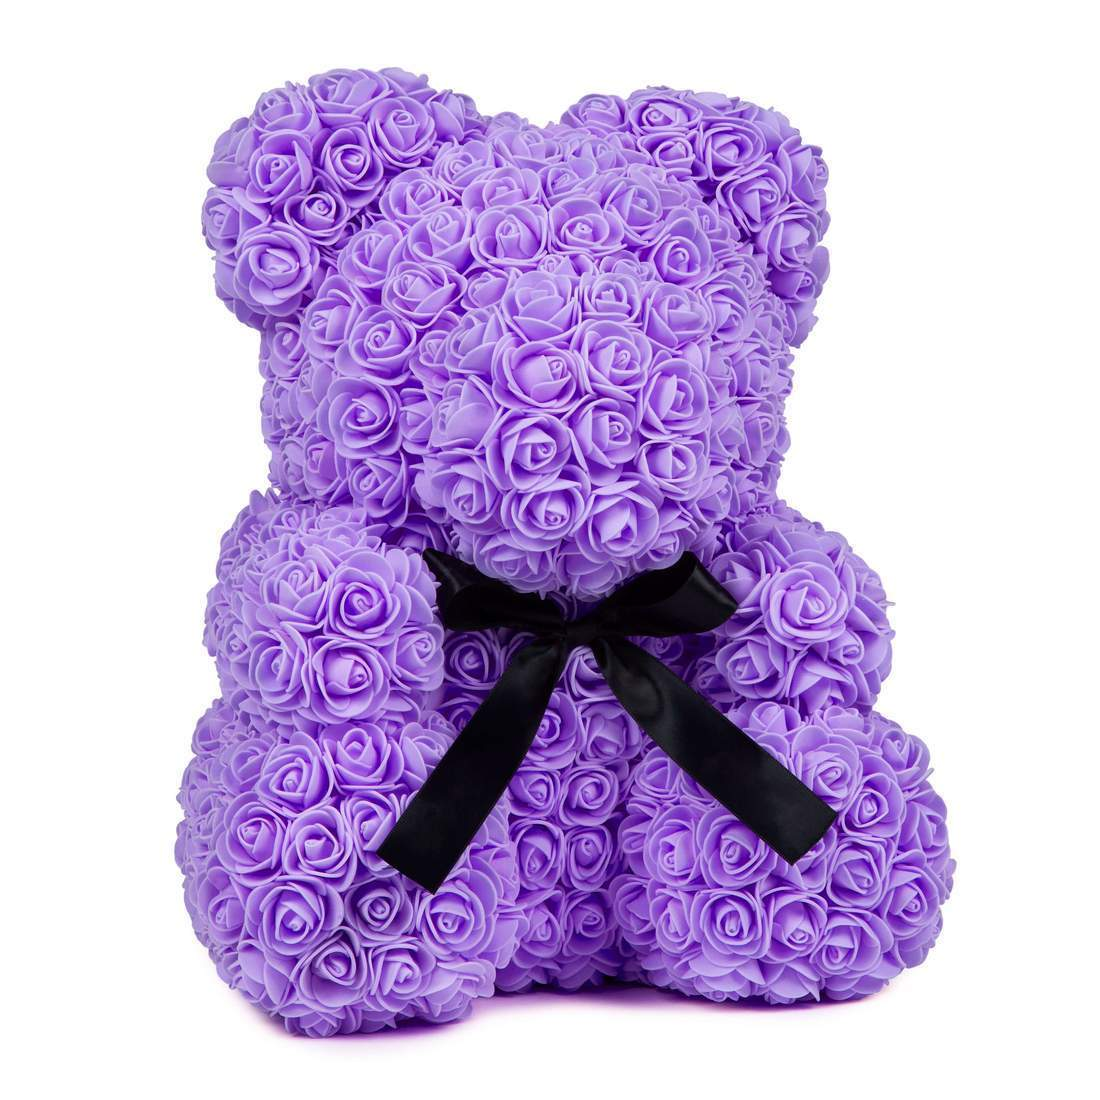 Rose Teddy Bear Purple Large (40cm x 30cm) ClickClickShip.com